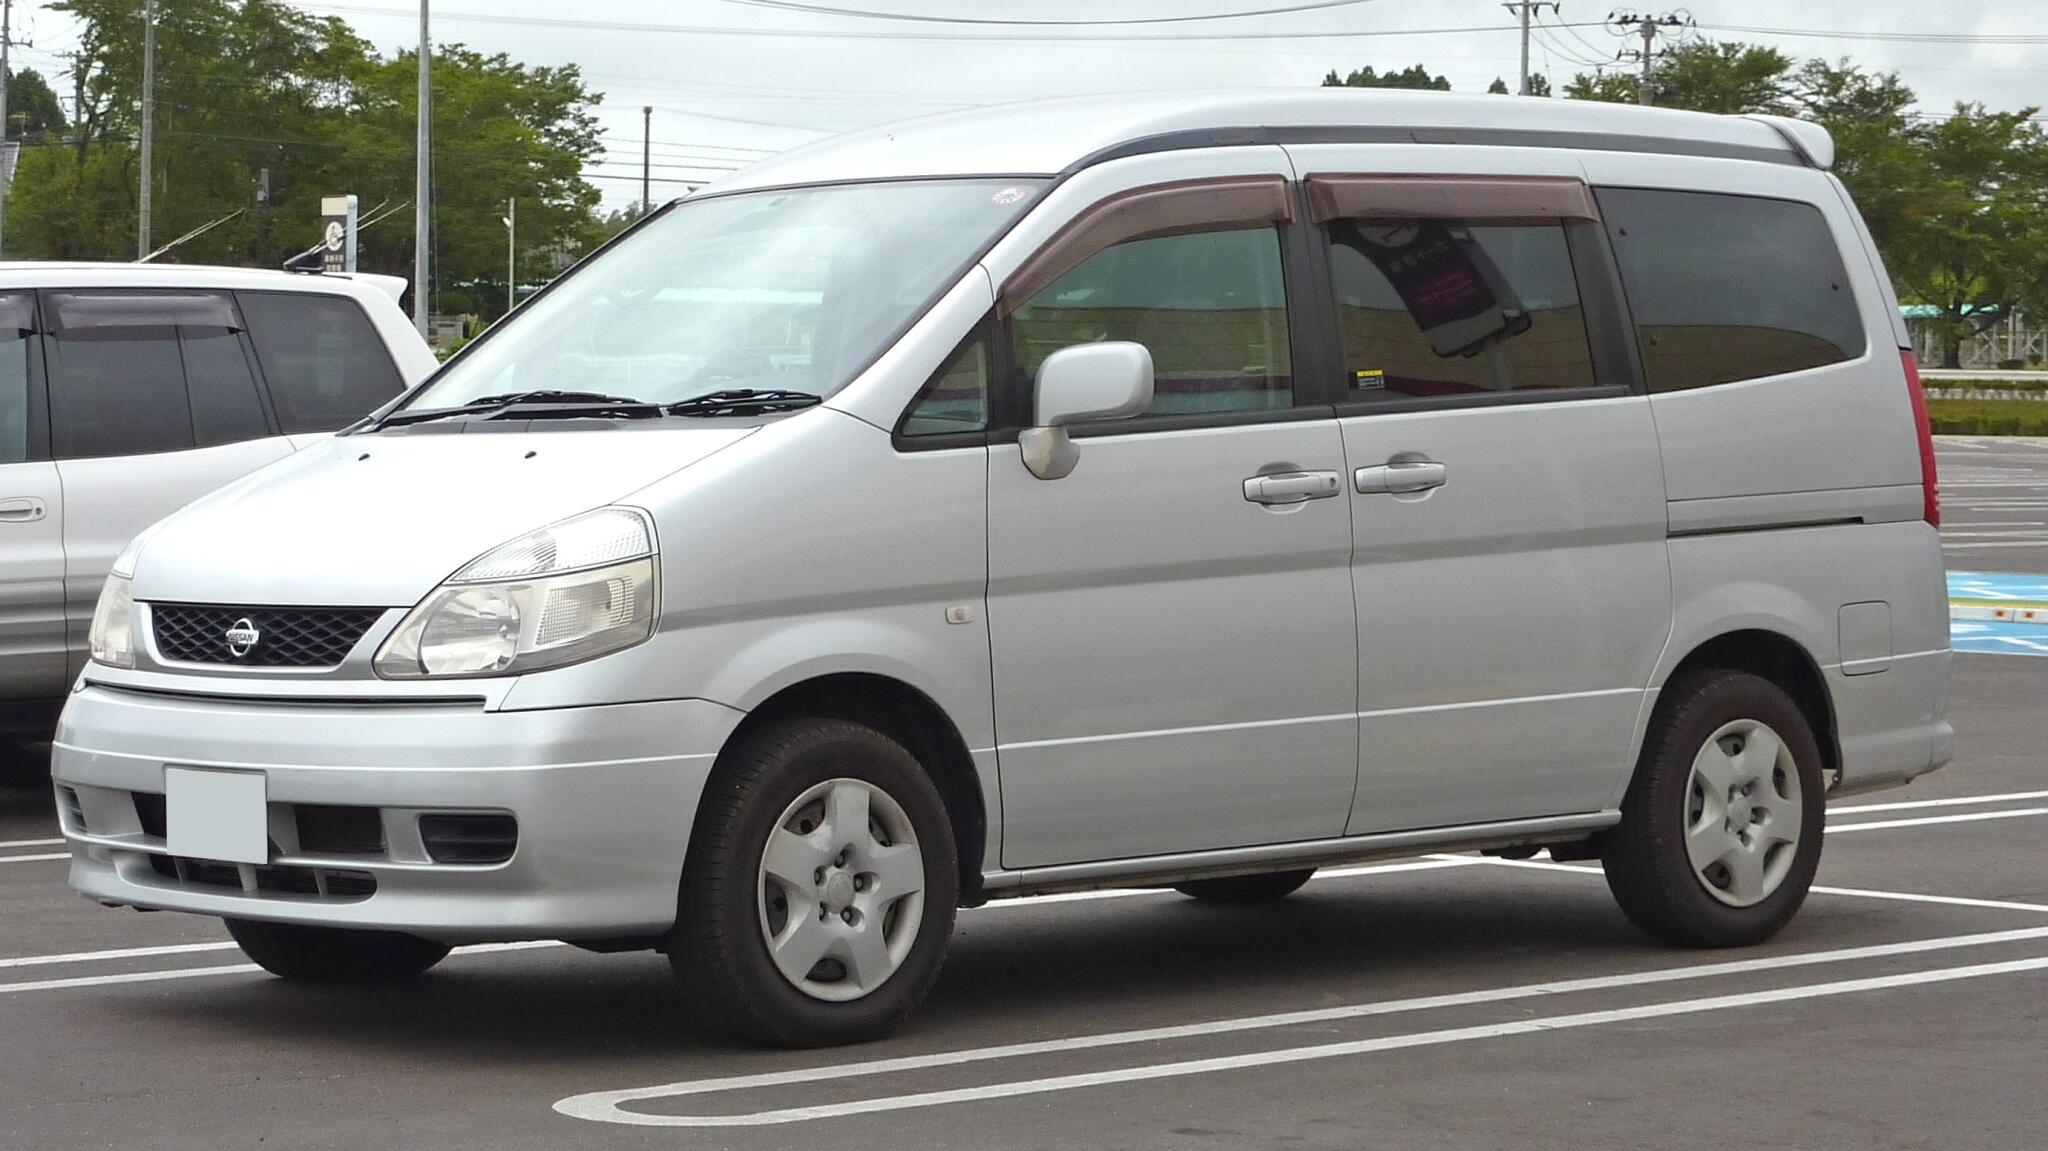 Nissan serena photo - 3